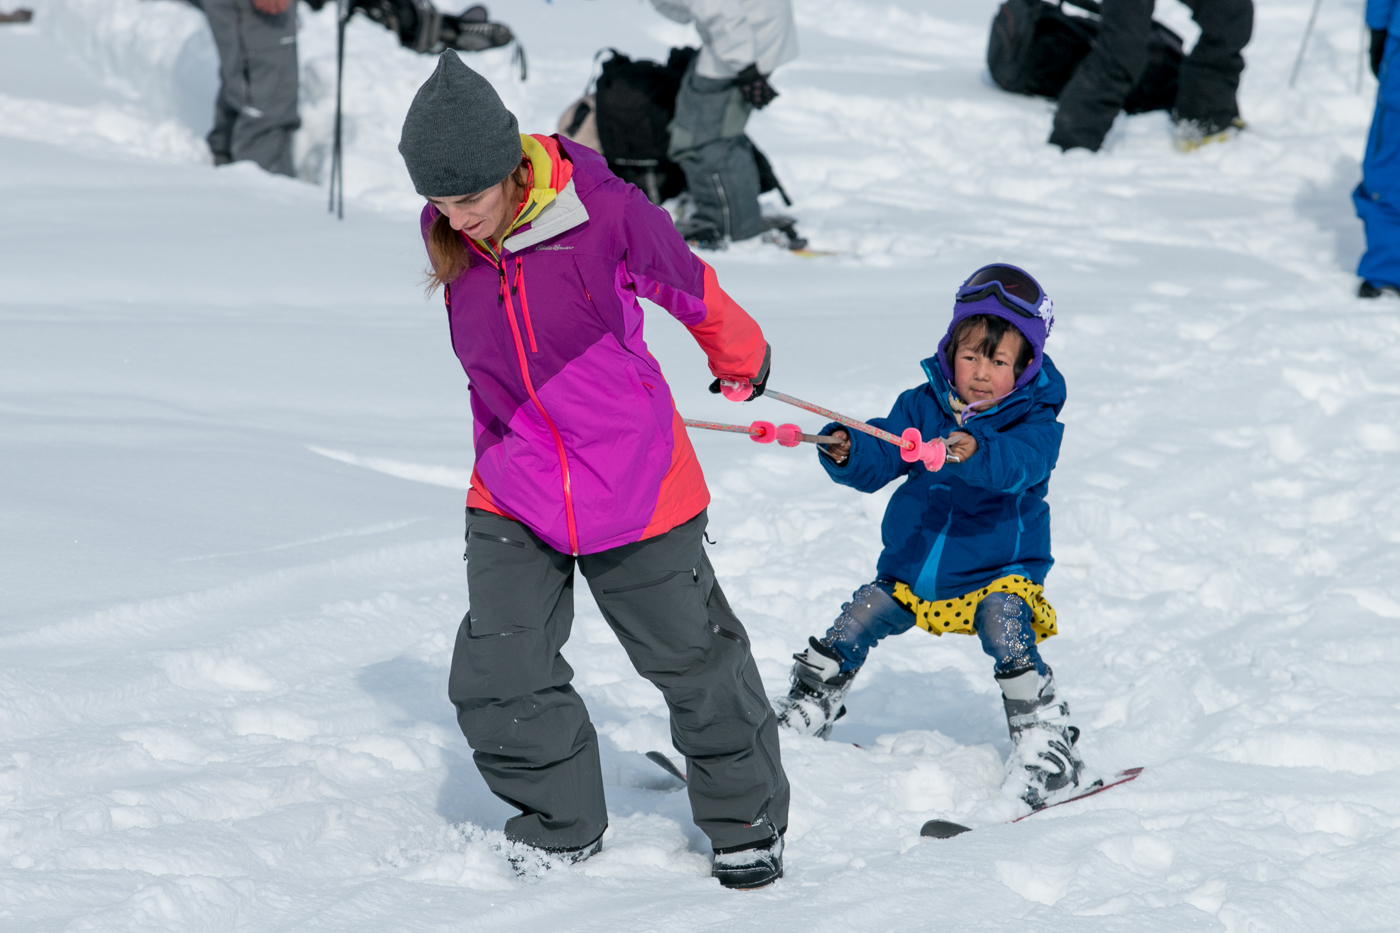 Nayla tows a 5-year-old girl up the ski hill.